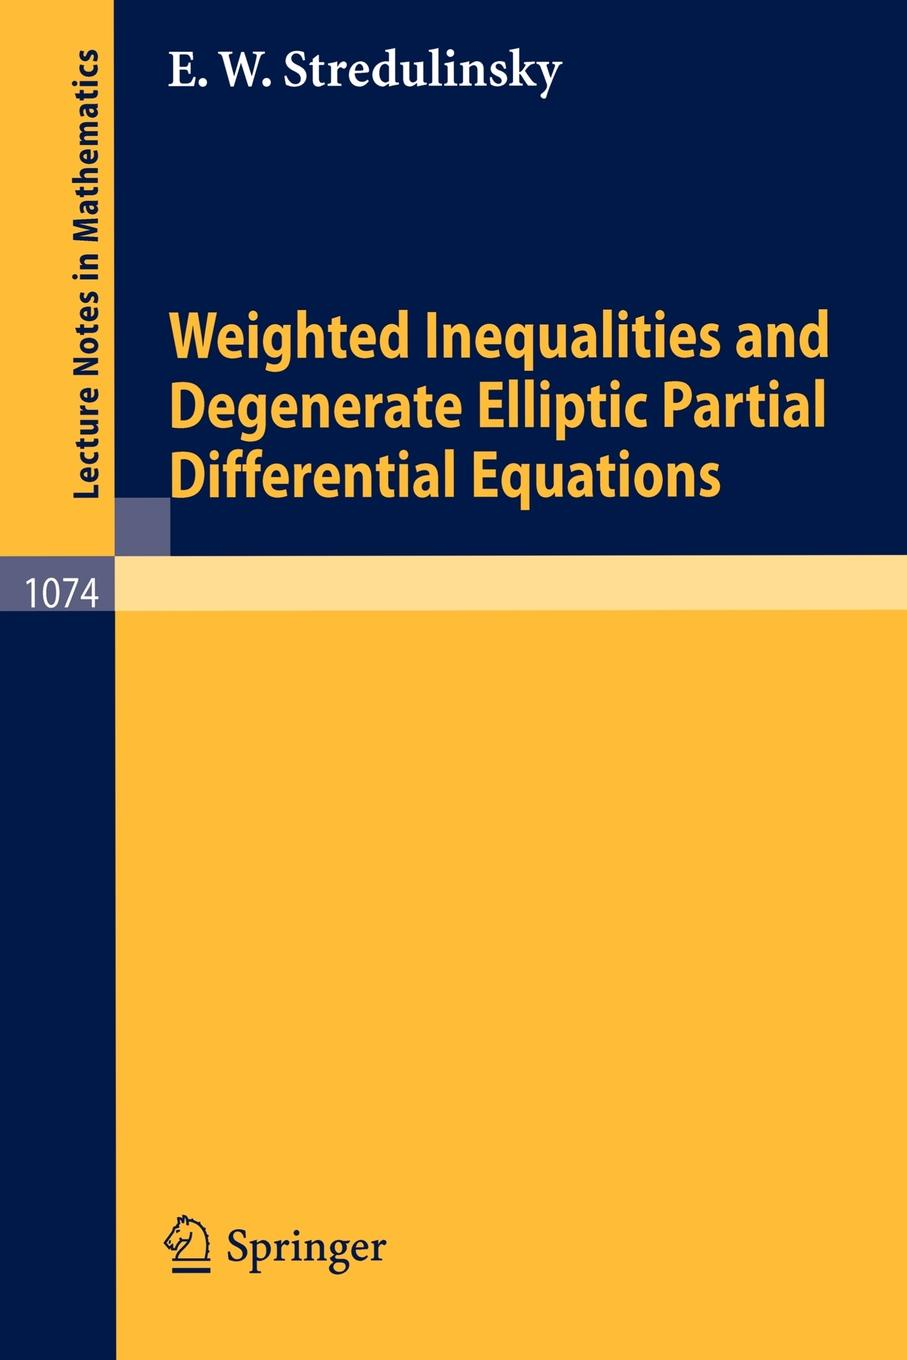 цены на E. W. Stredulinsky Weighted Inequalities and Degenerate Elliptic Partial Differential Equations  в интернет-магазинах